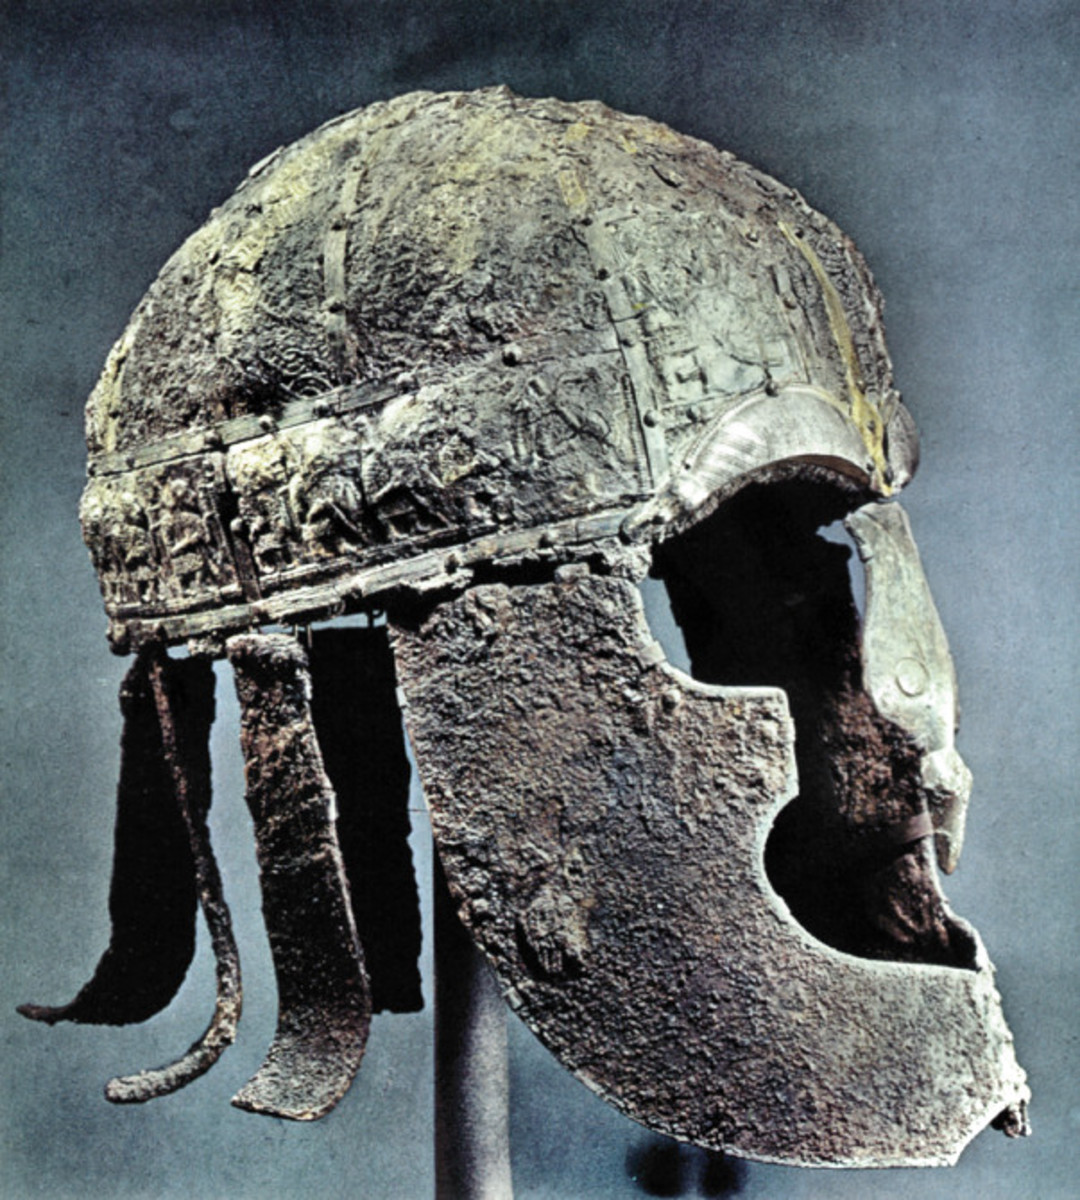 Vendel helmet unearthed from ship burials north of Uppsala in central Sweden, believed to have been linked to the 6th Century Yngling dynasty - forebears of King Hrolf's enemy King Adhils